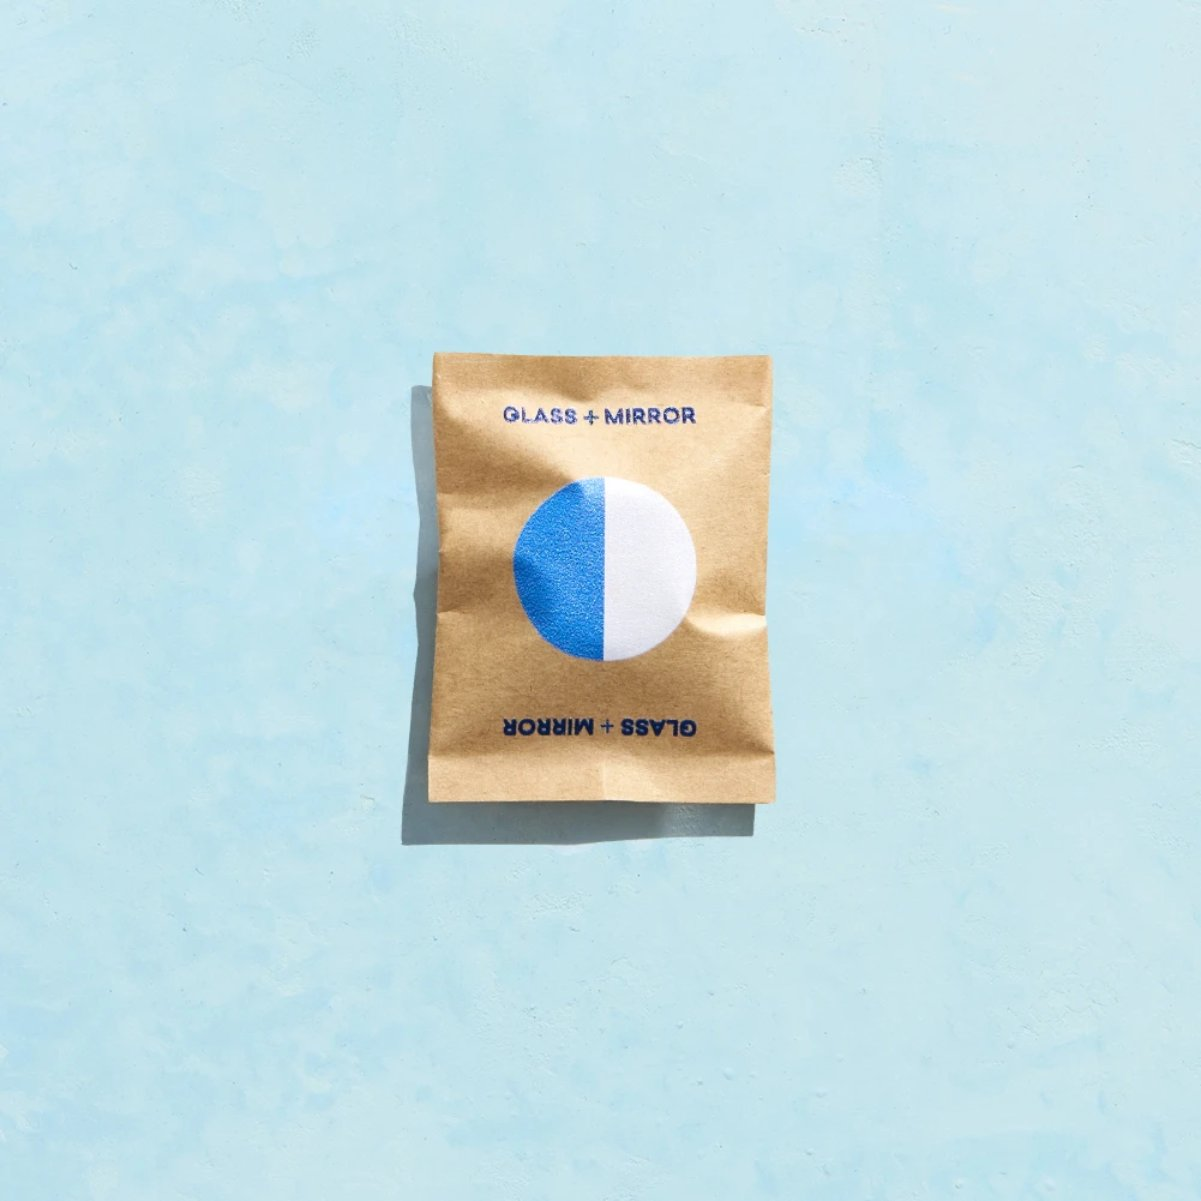 Glass + Mirror tablet wrapped in compostable brown paper on a blue background